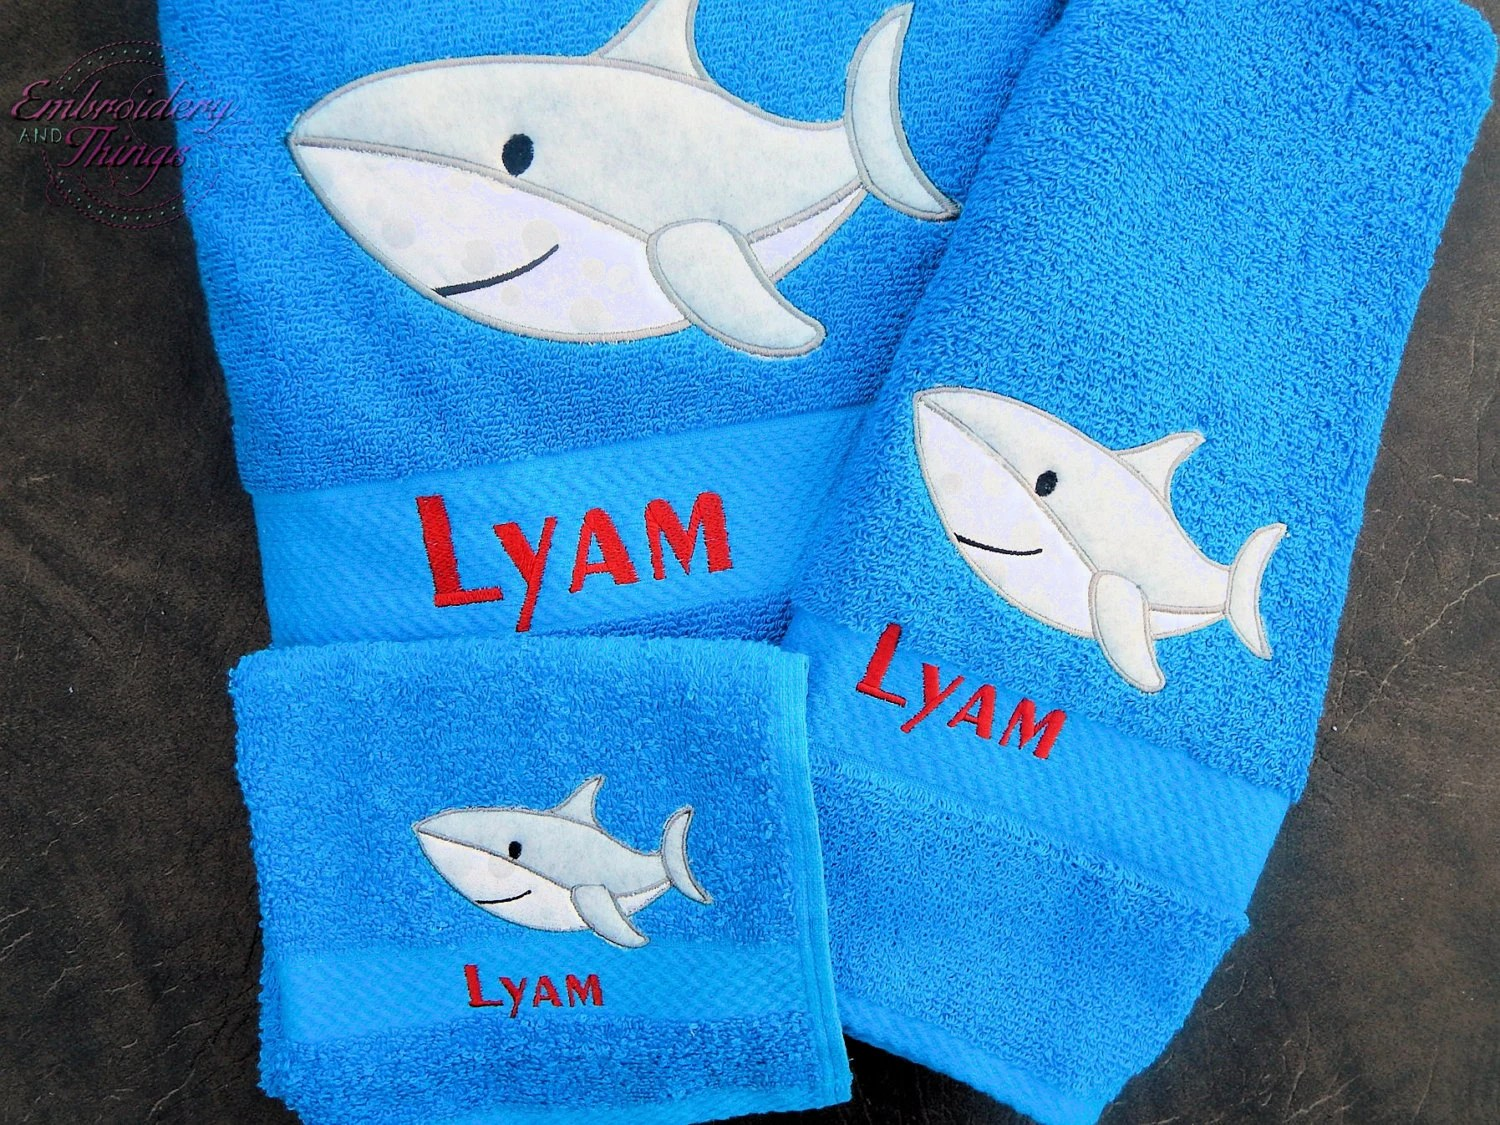 Kids Bath Towels Bath Towels Best Bath Towels For Kids Personalized Kids Bath Towels Dolphin Towel Shark Towel Monogrammed Towels Personalized Gifts